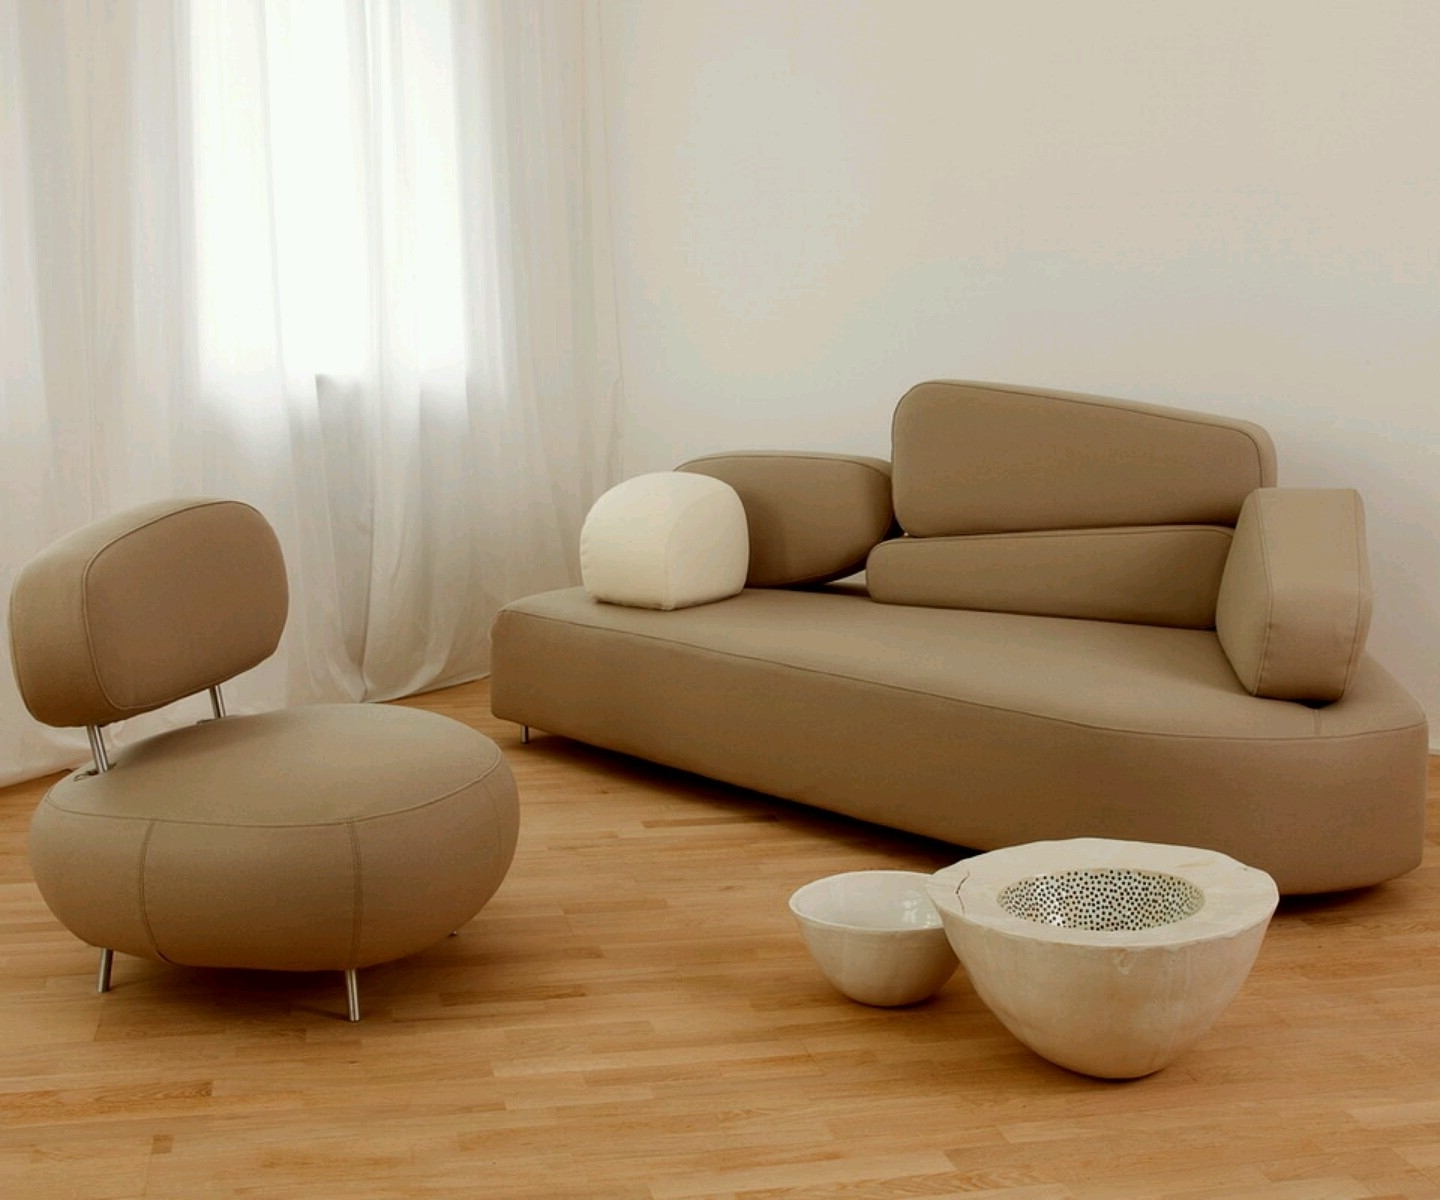 Famous Unusual Sofas And Chairs (View 7 of 20)